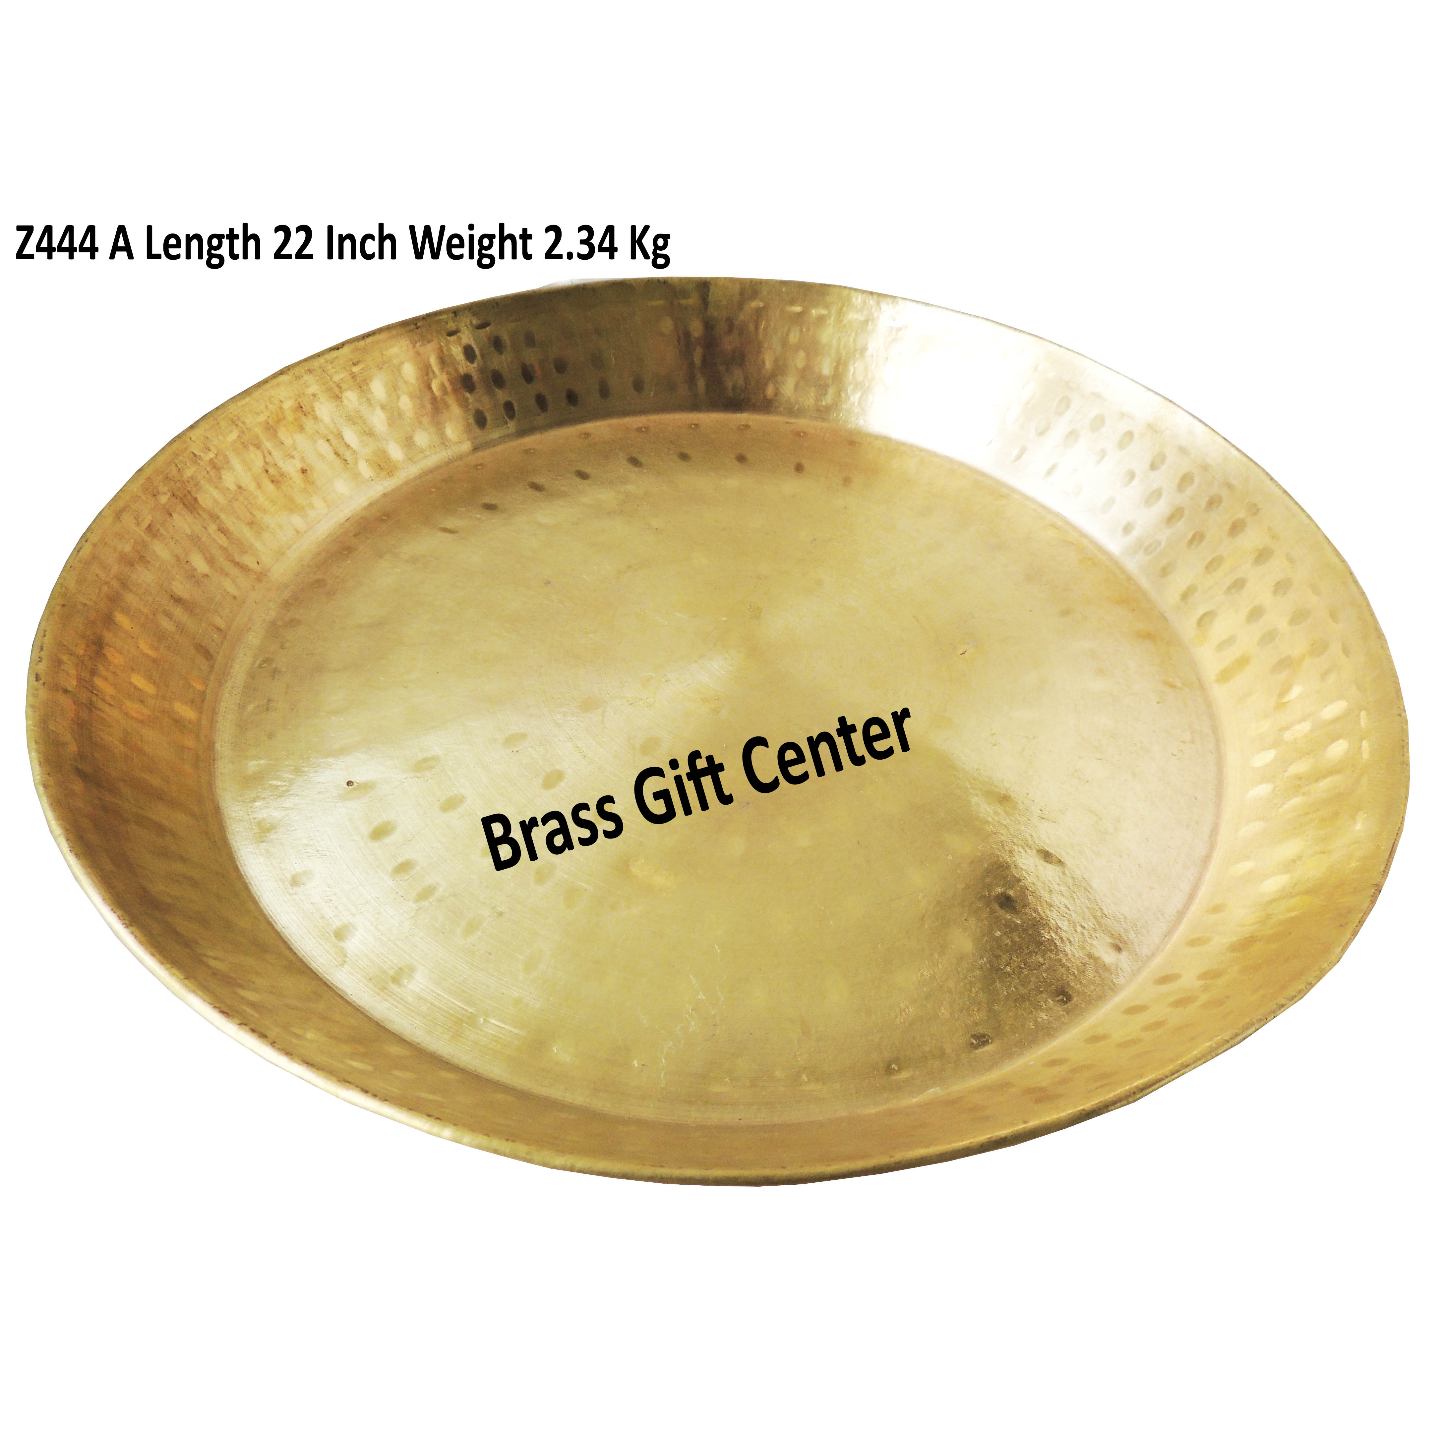 Brass Thaal With Brass Finish Diameter 22 Inch Z444 A